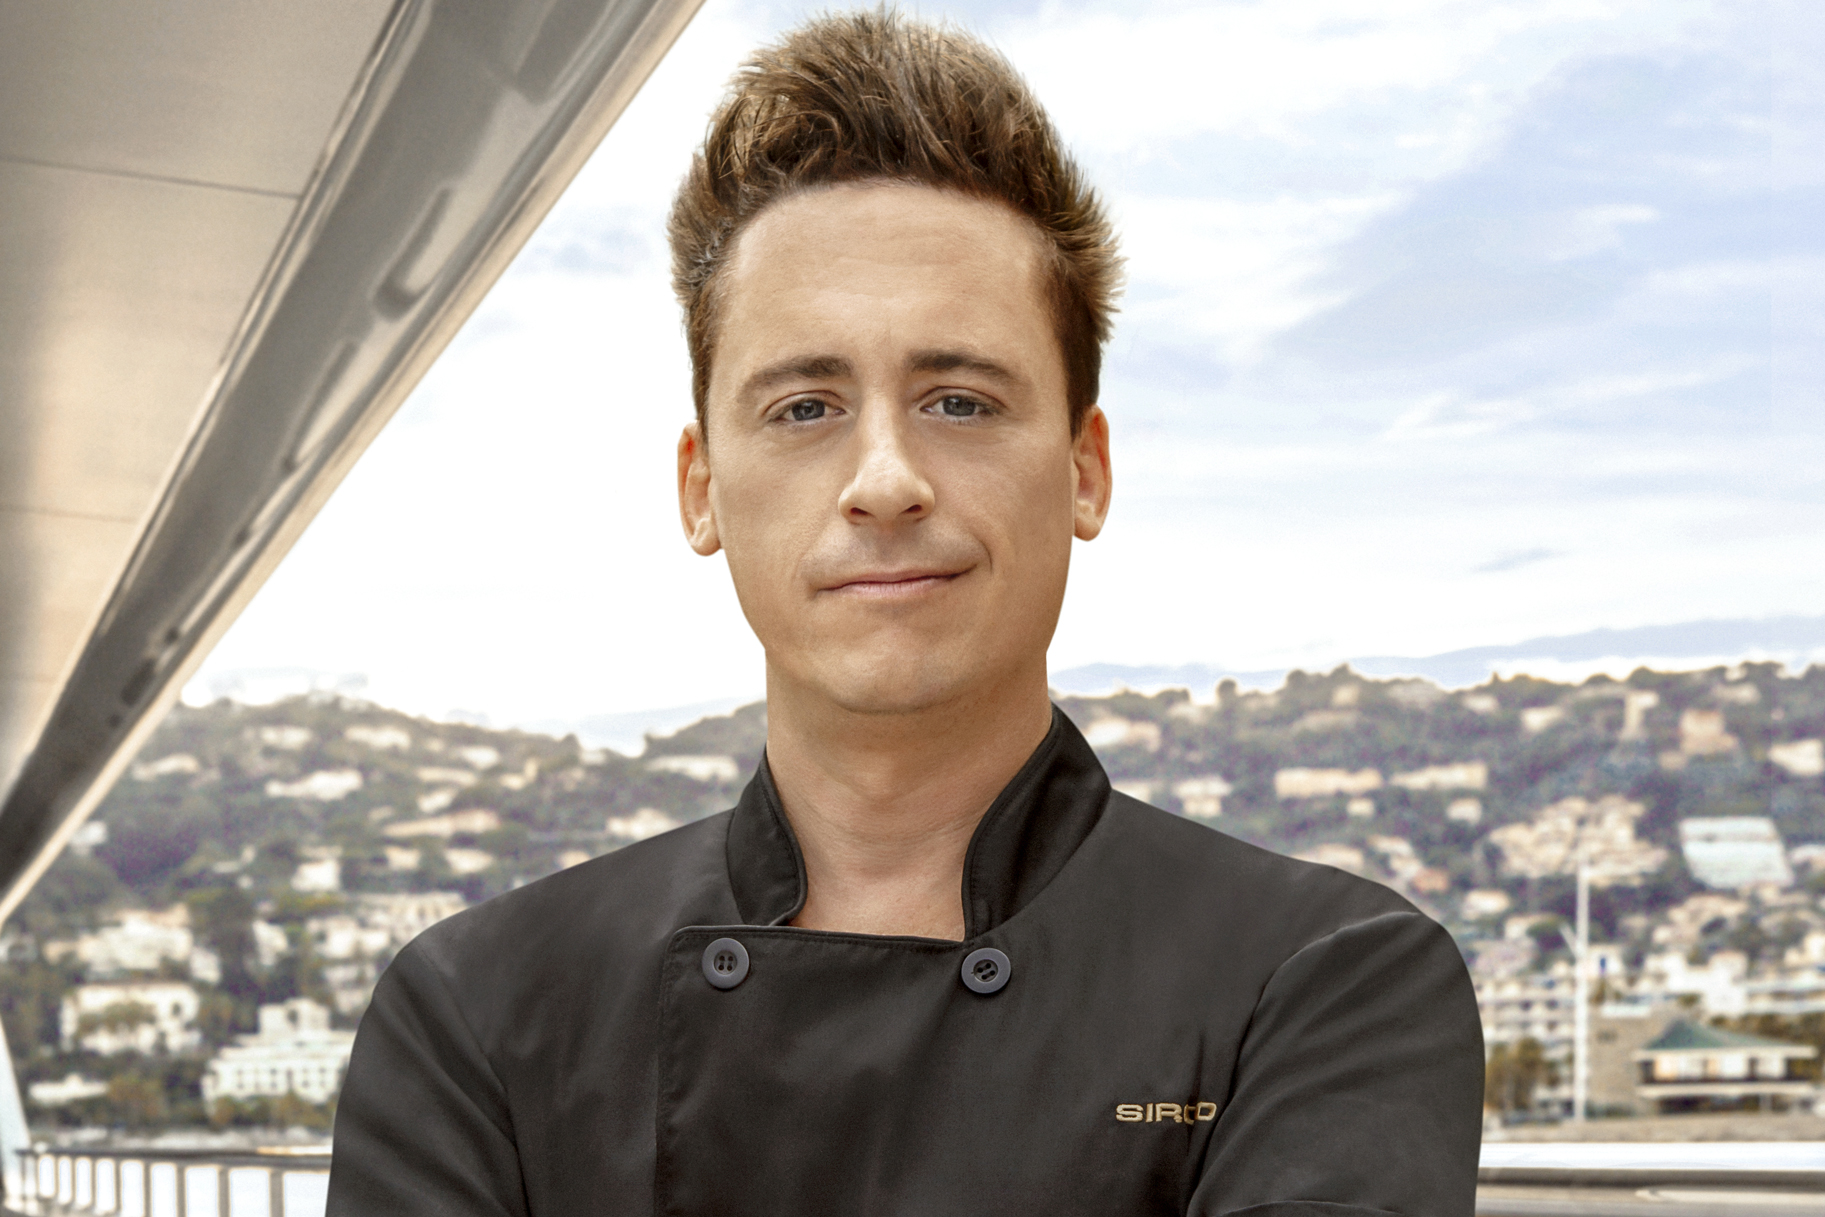 Ben Robinson in Below Deck Mediterranean Season 4